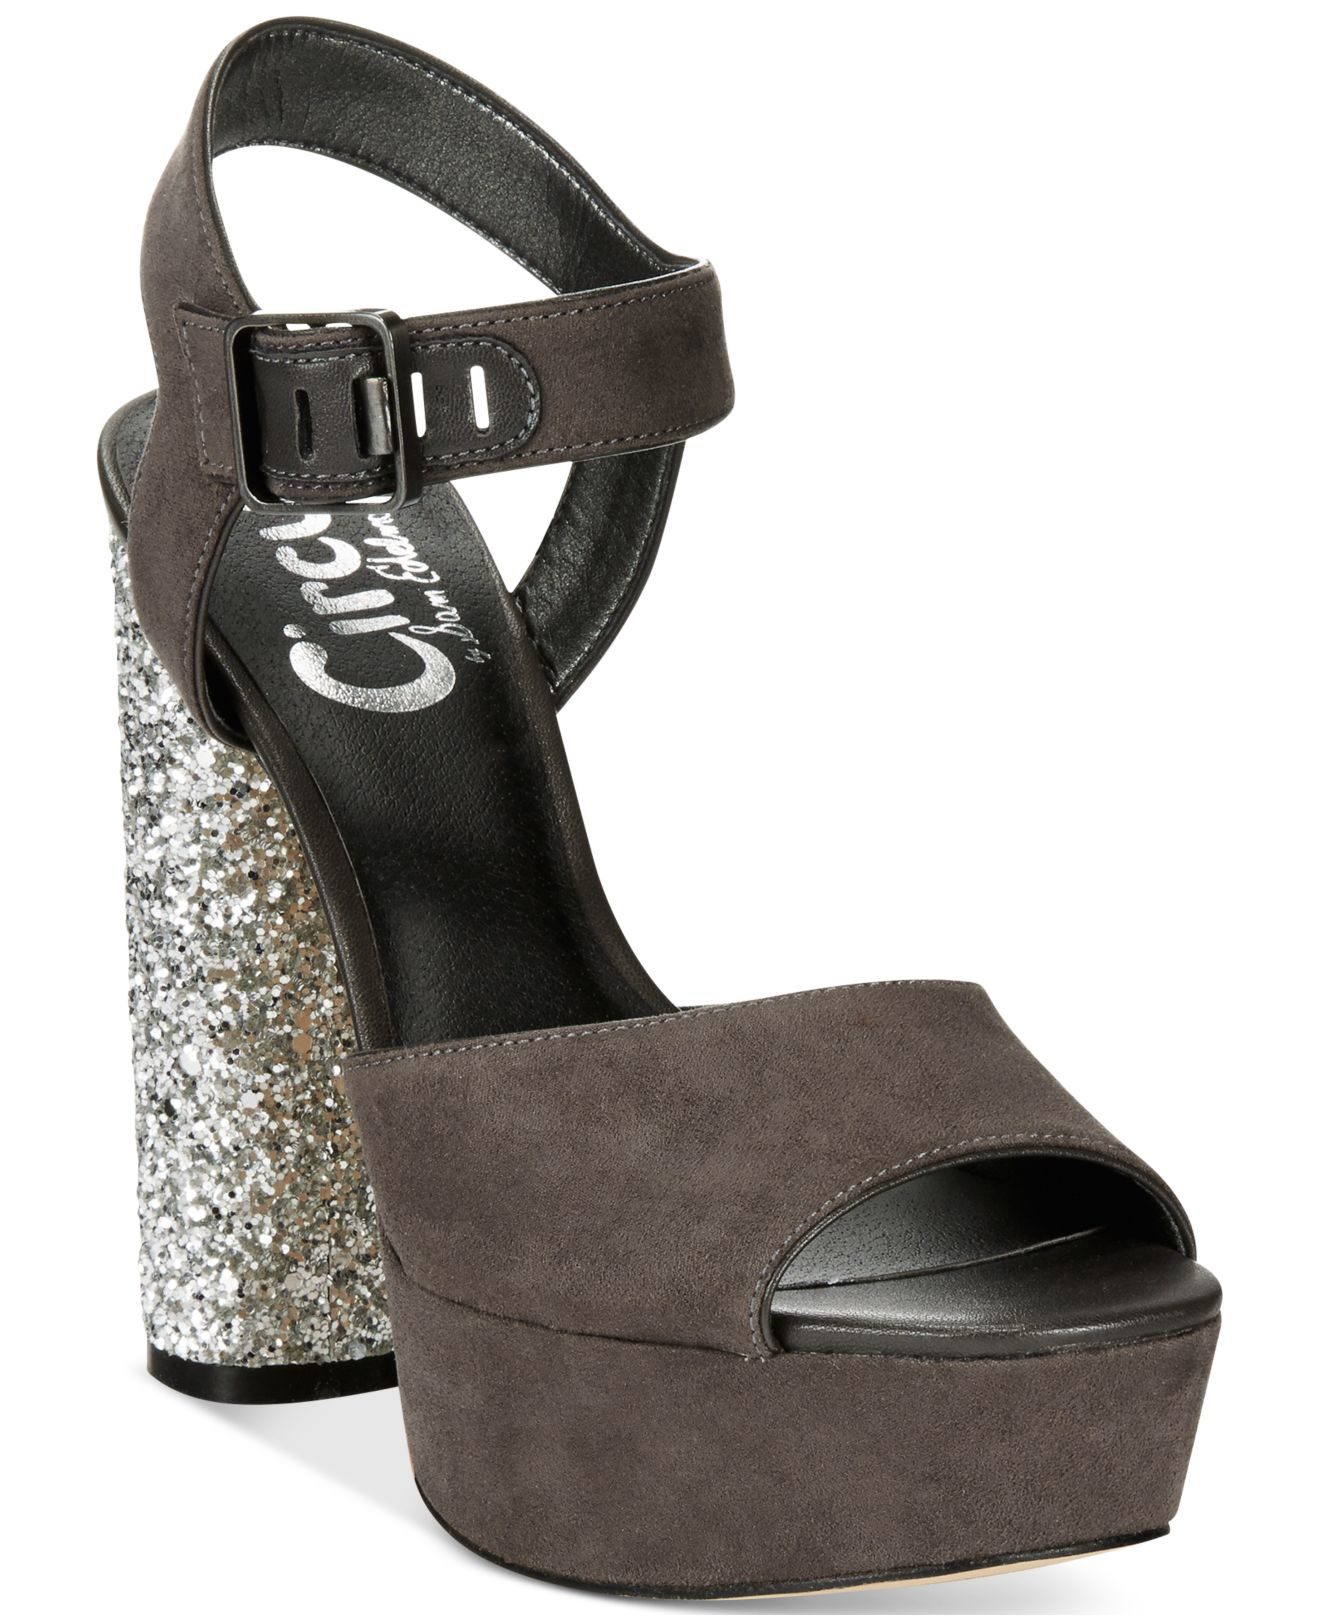 109b135c81c Lyst - Circus by Sam Edelman Cosmo Platform Sandals in Gray